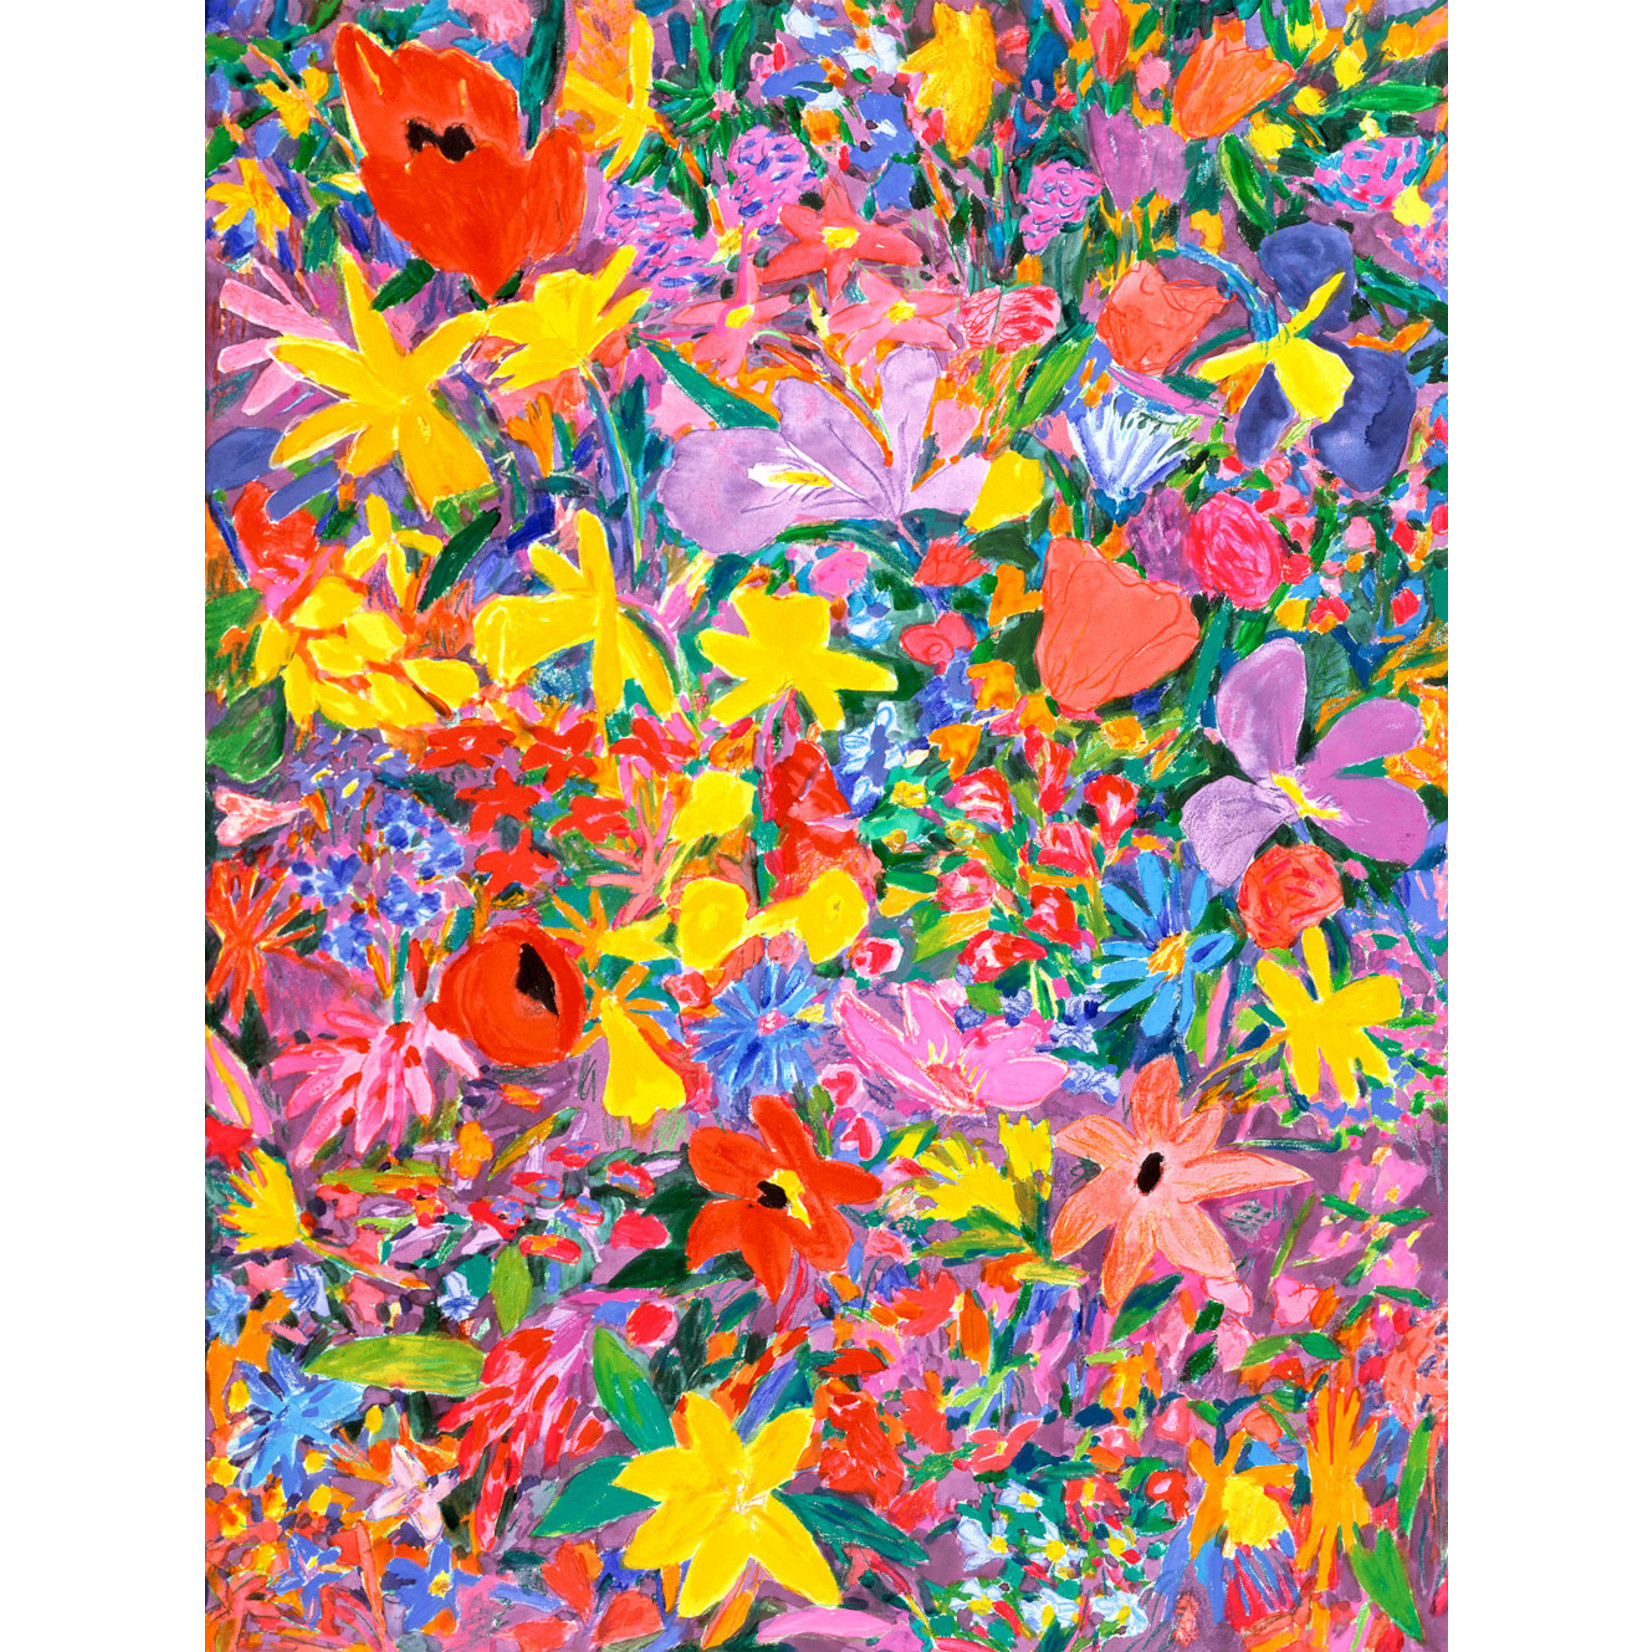 Books & Stationery Jigsaw puzzle - Butterfly dreams